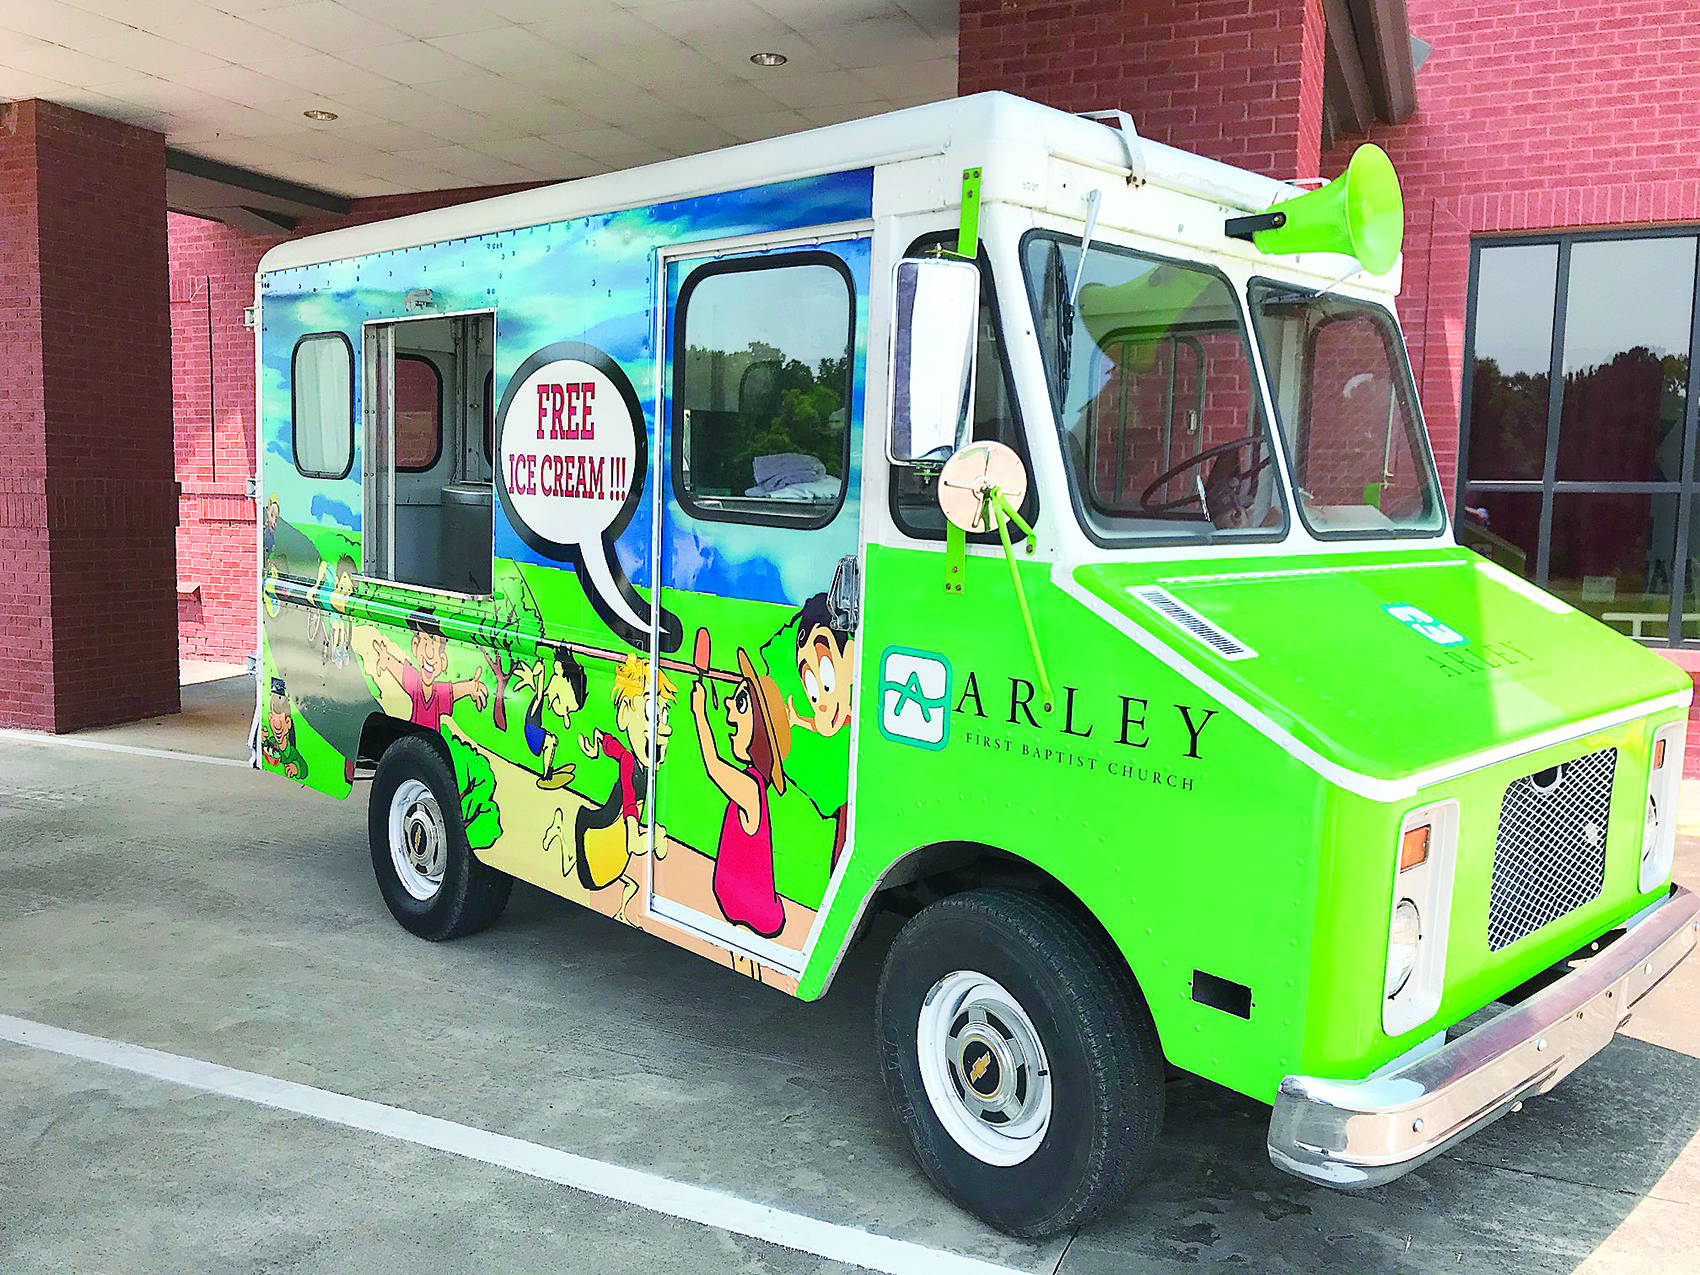 The Arley First Baptist Church's new Ice Cream Truck Ministry is now cruising through the Arley neighborhoods offering free ice cream to young and old alike in the name of Jesus.